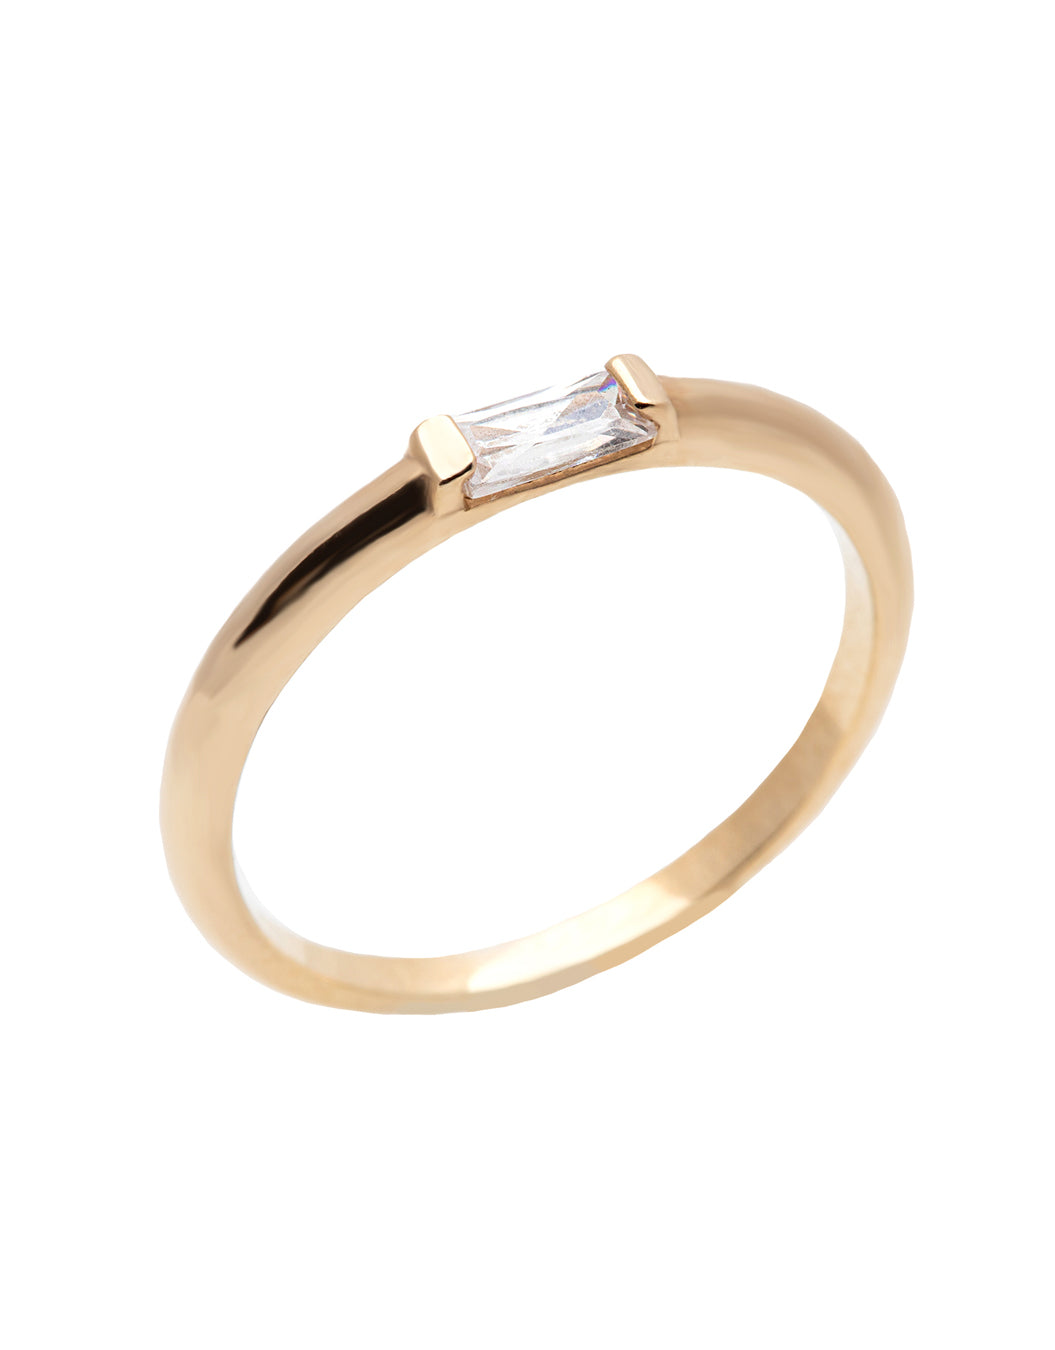 A  delicate 14k yellow gold engagement ring, set with a 0.25 baguette cut white diamond.